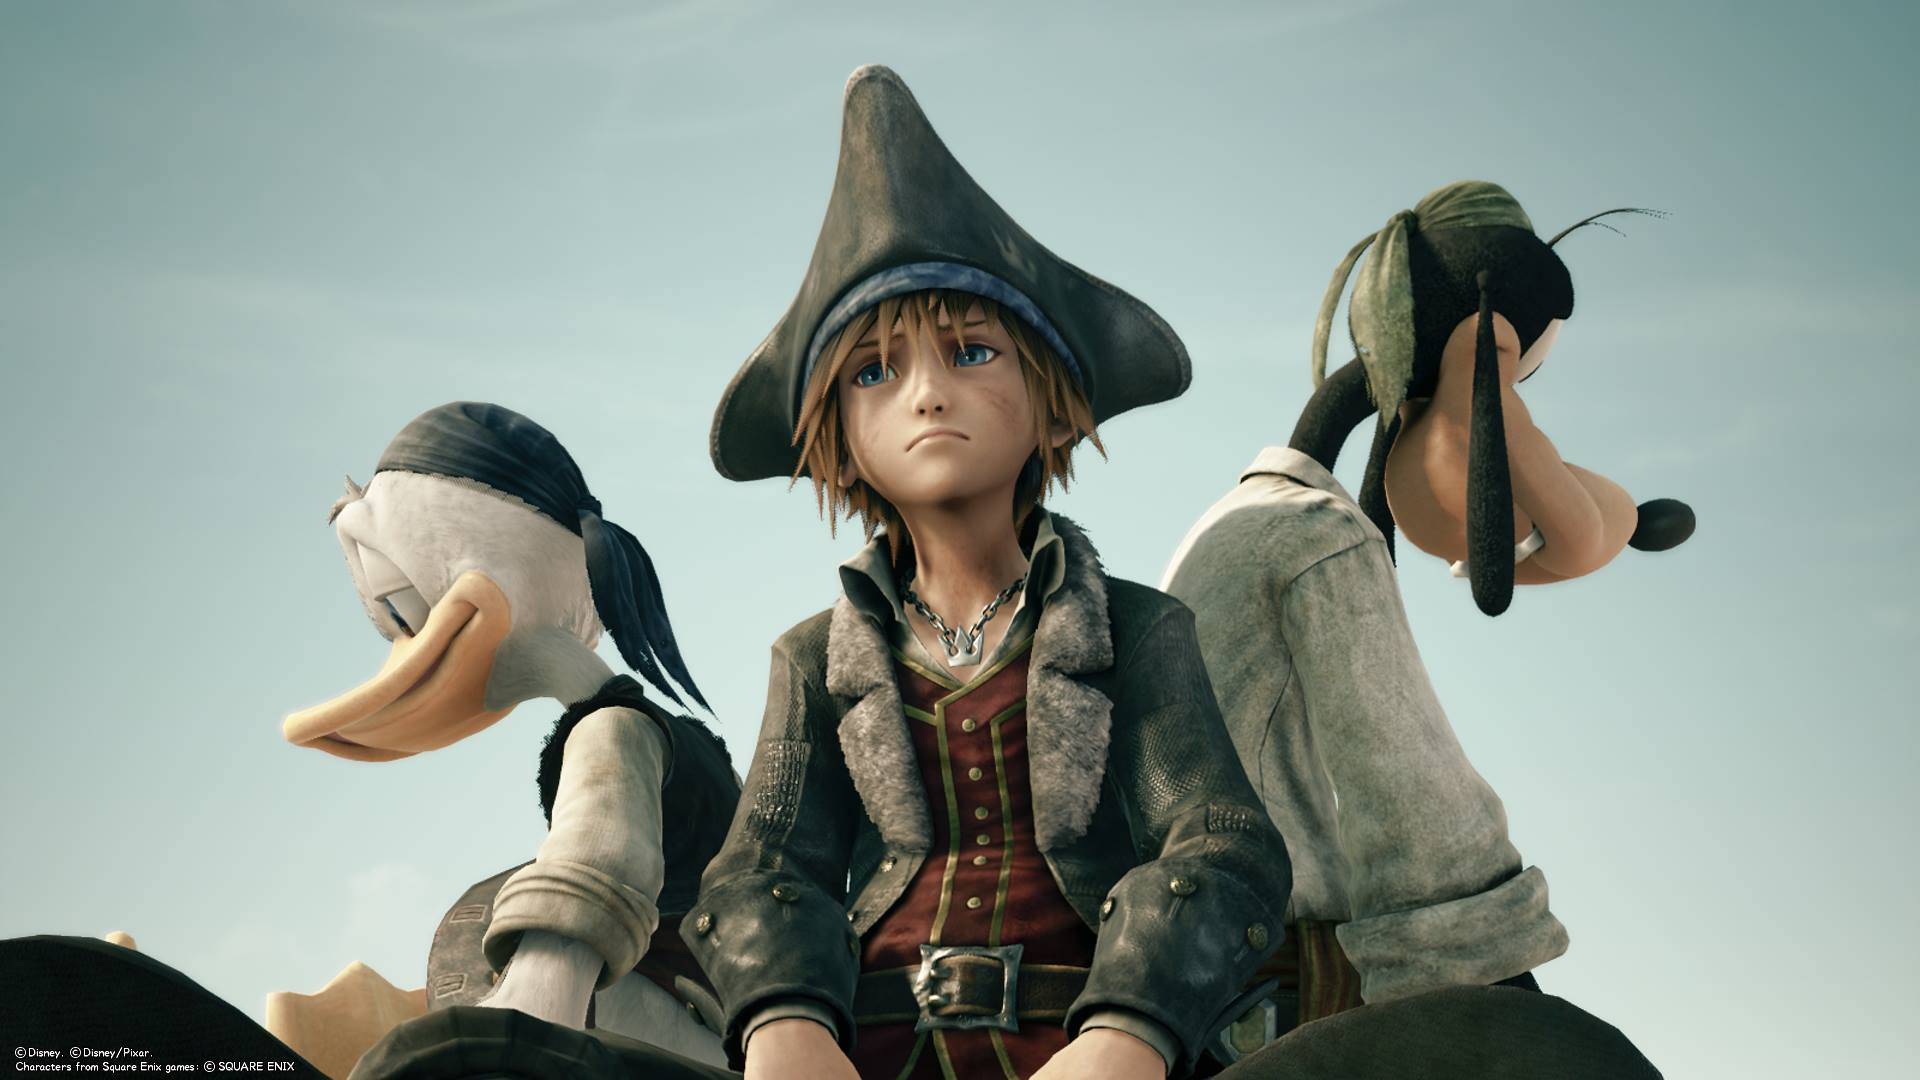 Our #2 pick is the Caribbean world in Kingdom Hearts 3.